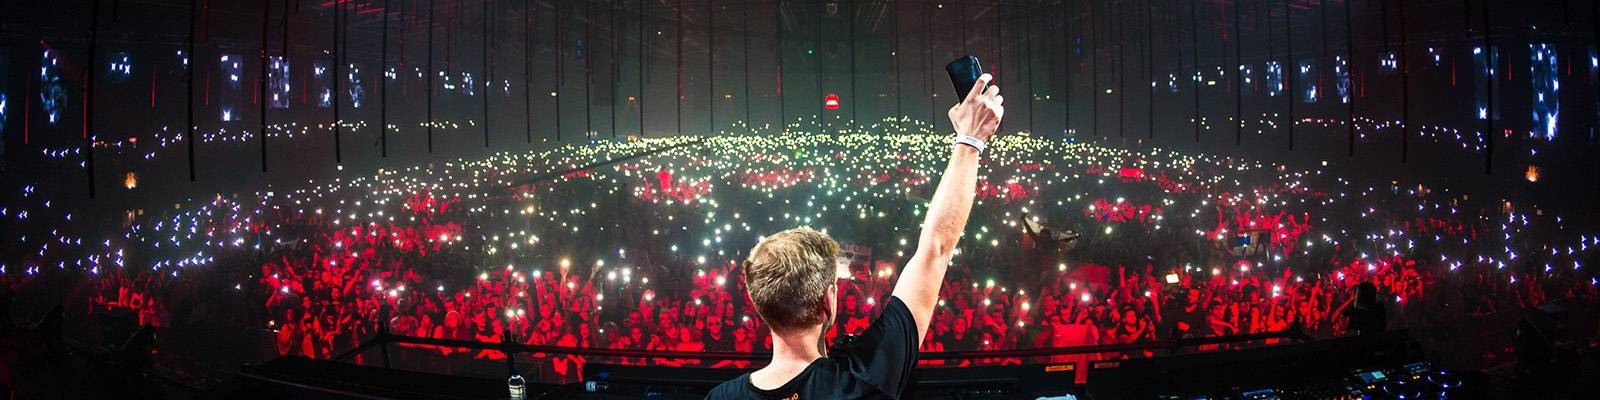 Armin van Buuren's full A State Of Trance 850 set is available on YouTube!